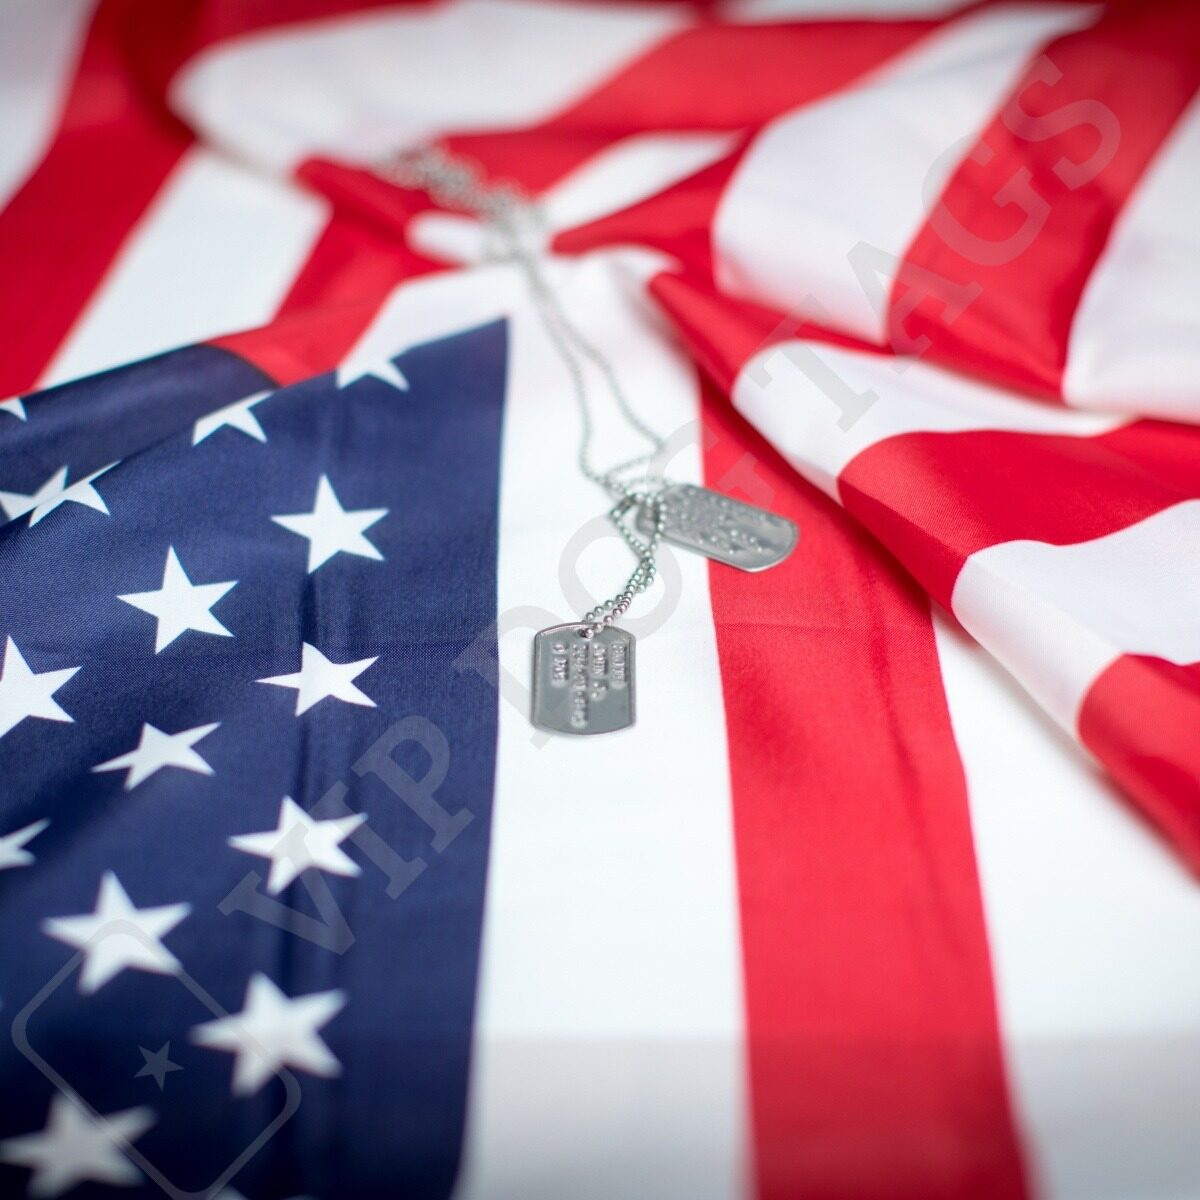 us_dogtags_mini_dull_finish_USA_flag